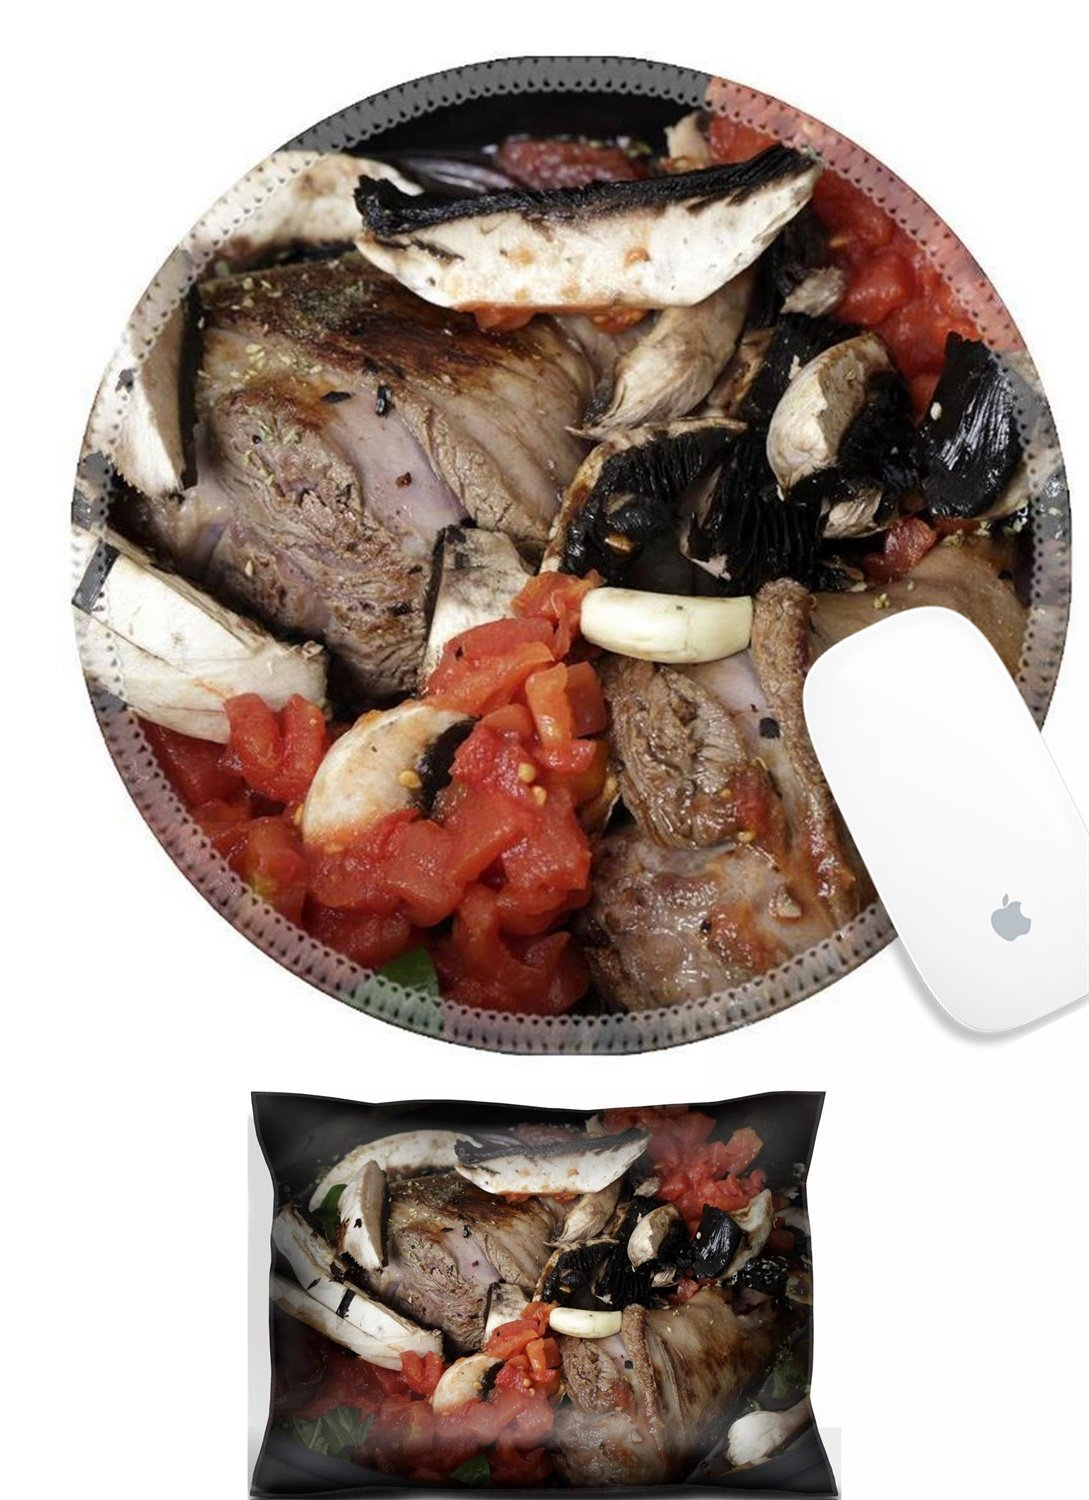 Luxlady Mouse Wrist Rest and Round Mouse Wrist Set IMAGE: 25865932 Two lamb shanks lightly browned ready for cooking in a slow cooker or crockpot with mushrooms tomatoes basil red wine and stock